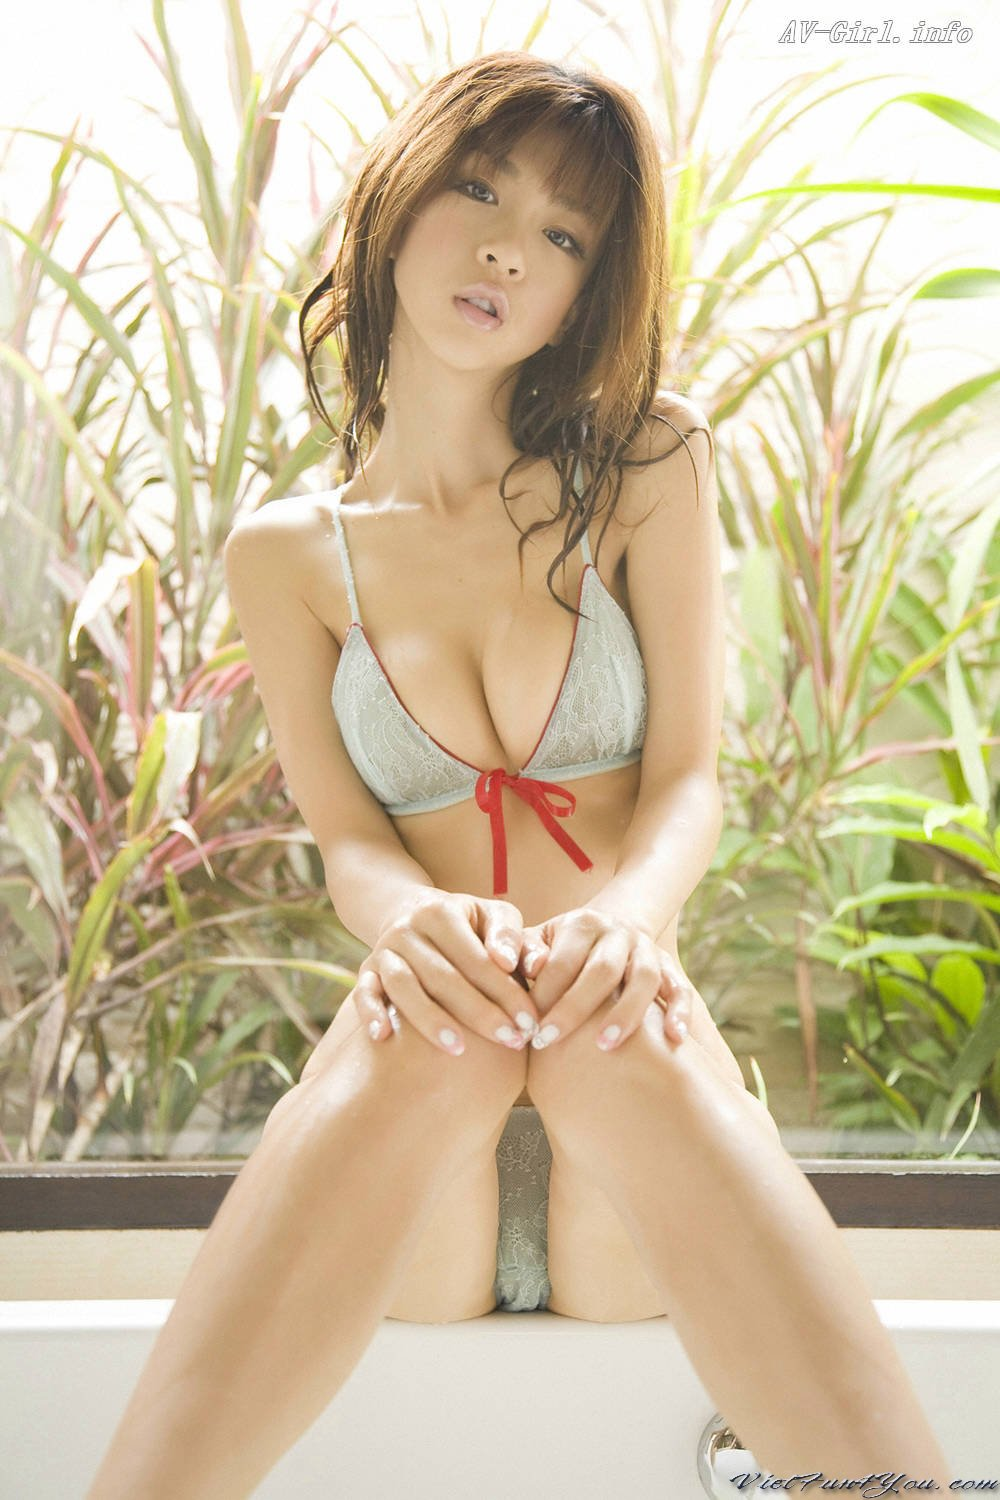 japan nude girl topless